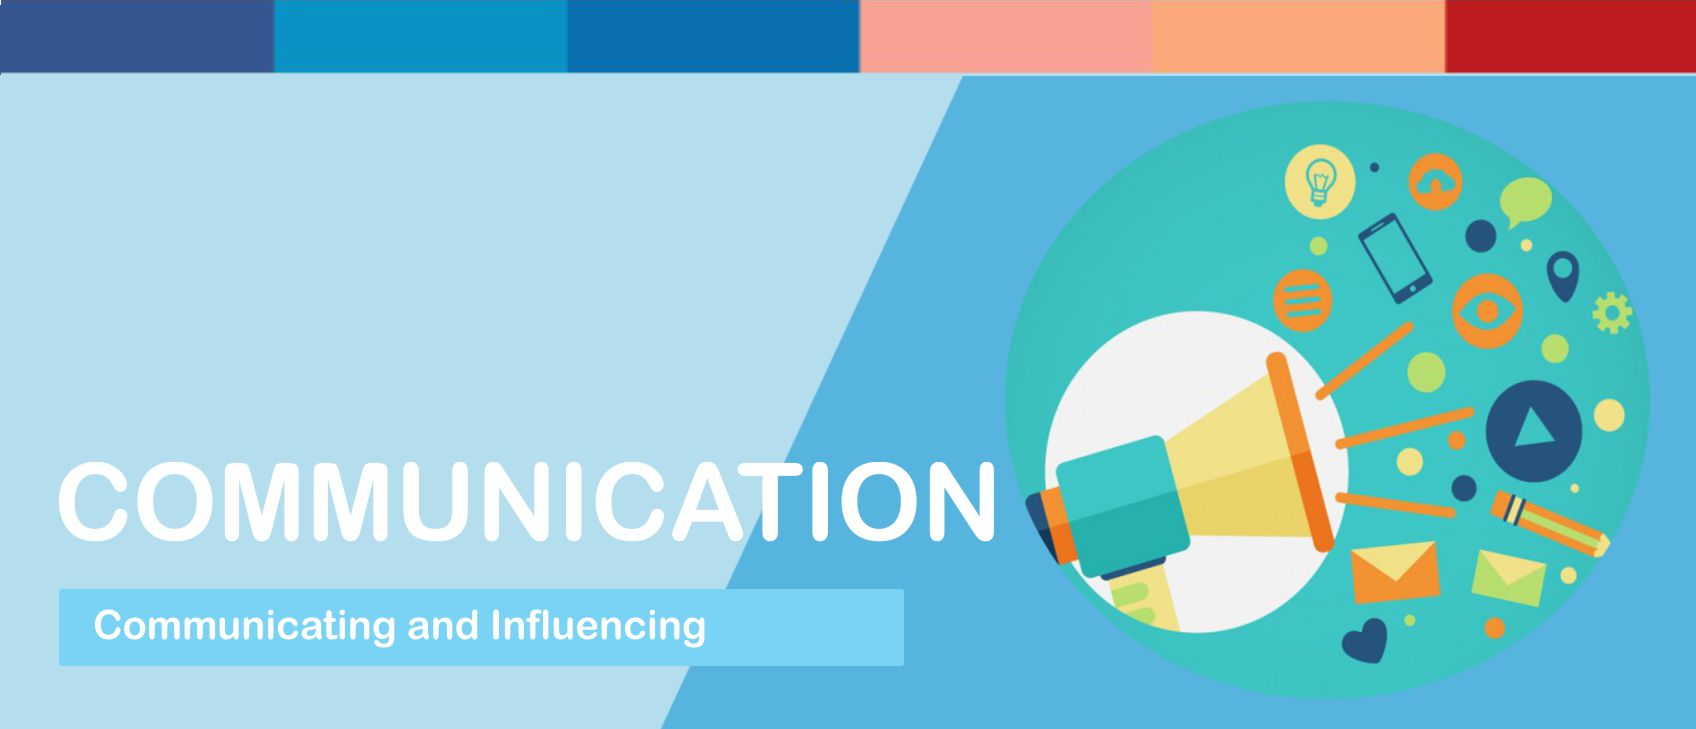 Communicating and Influencing / Communication Competency Examples